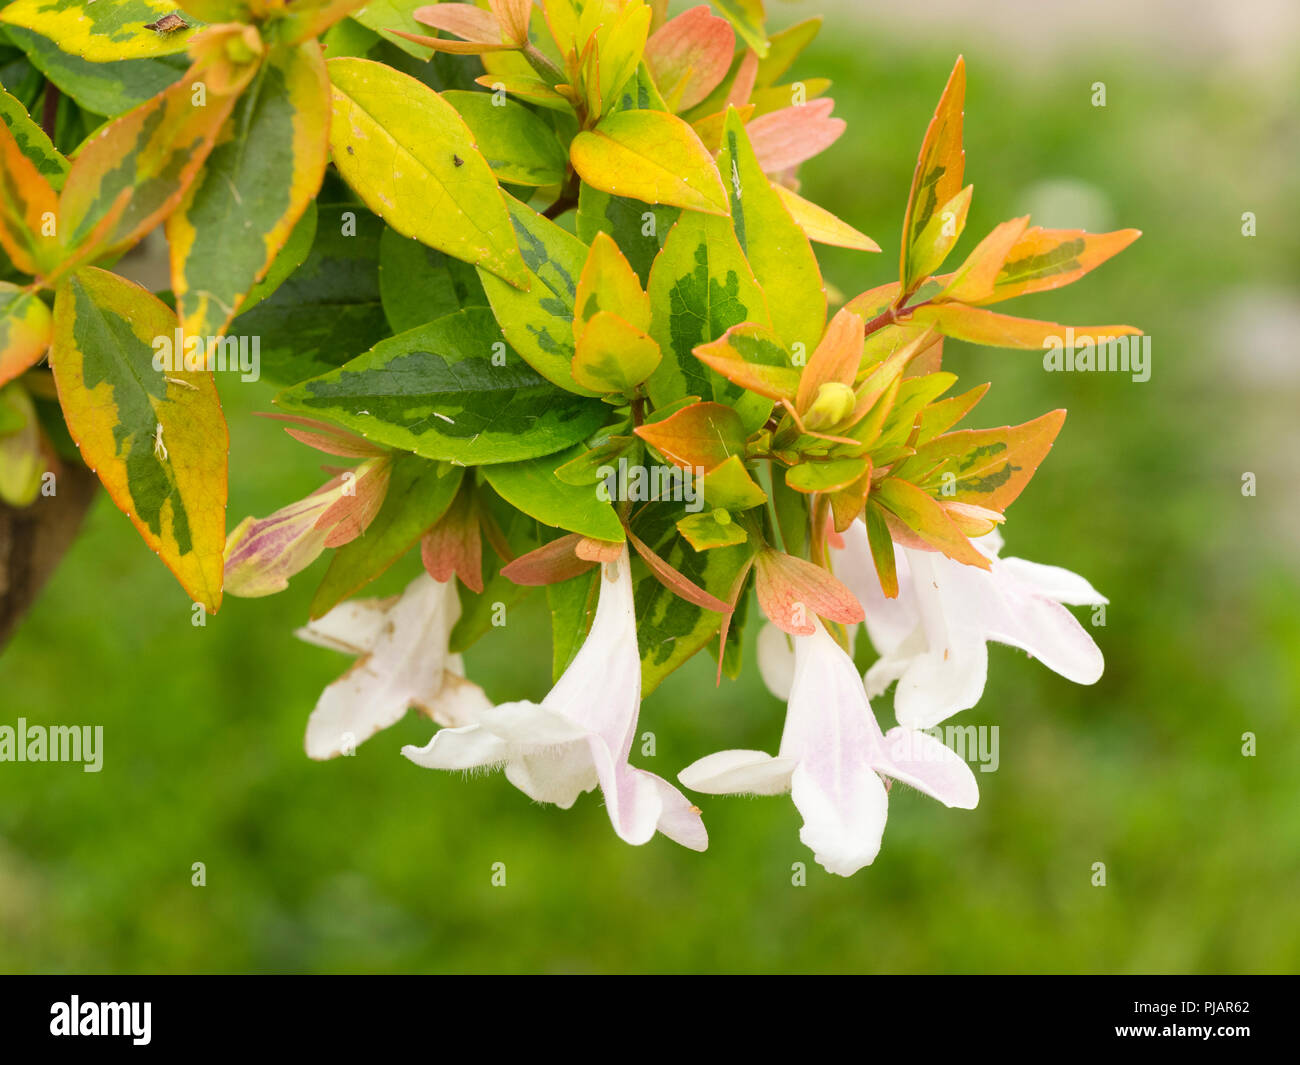 Yellow Gold And Green Foliage Of The Hardy Evergreen Shrub Abelia